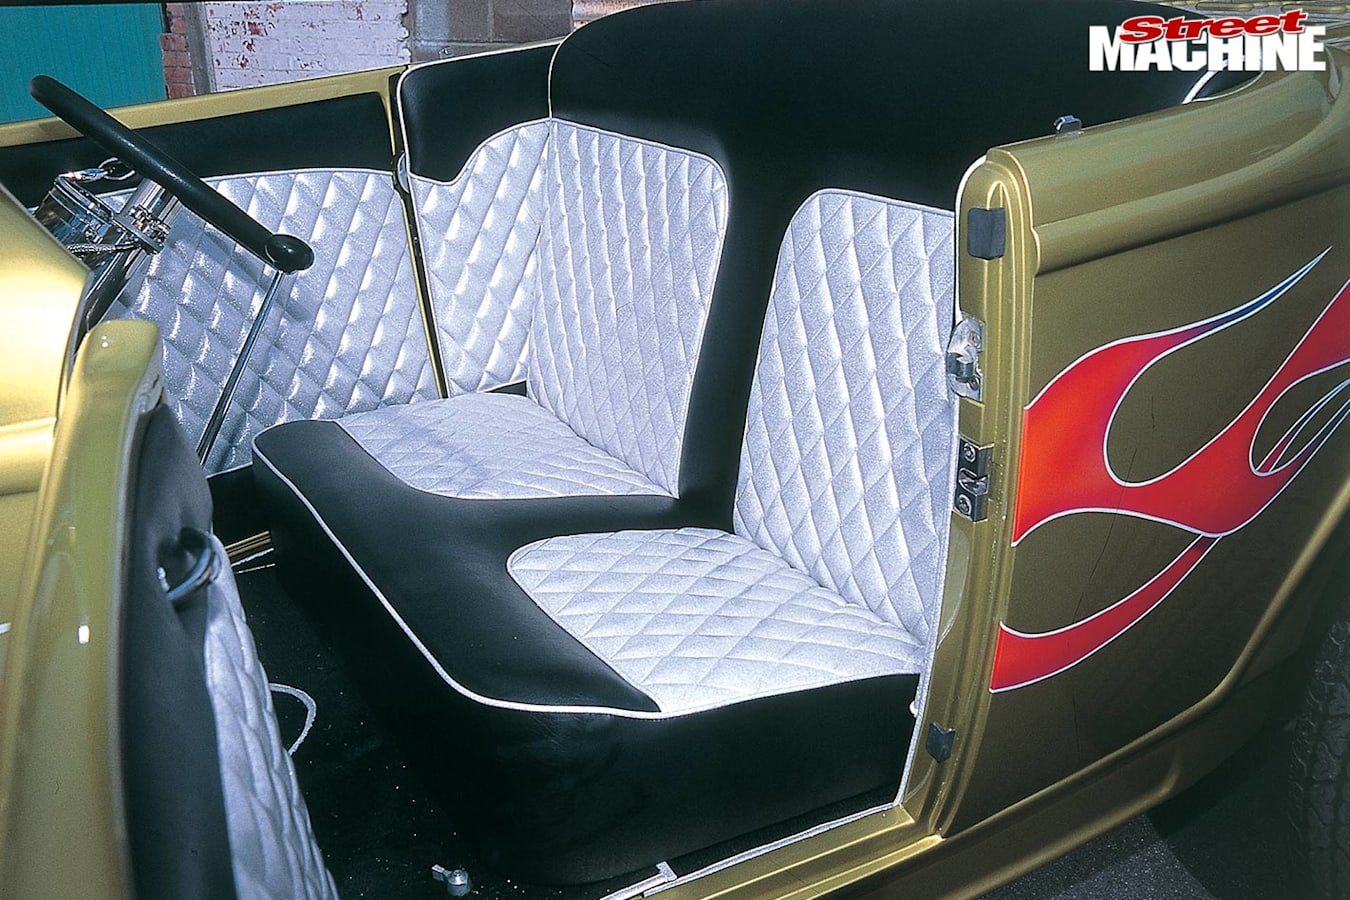 Ford Model A seats